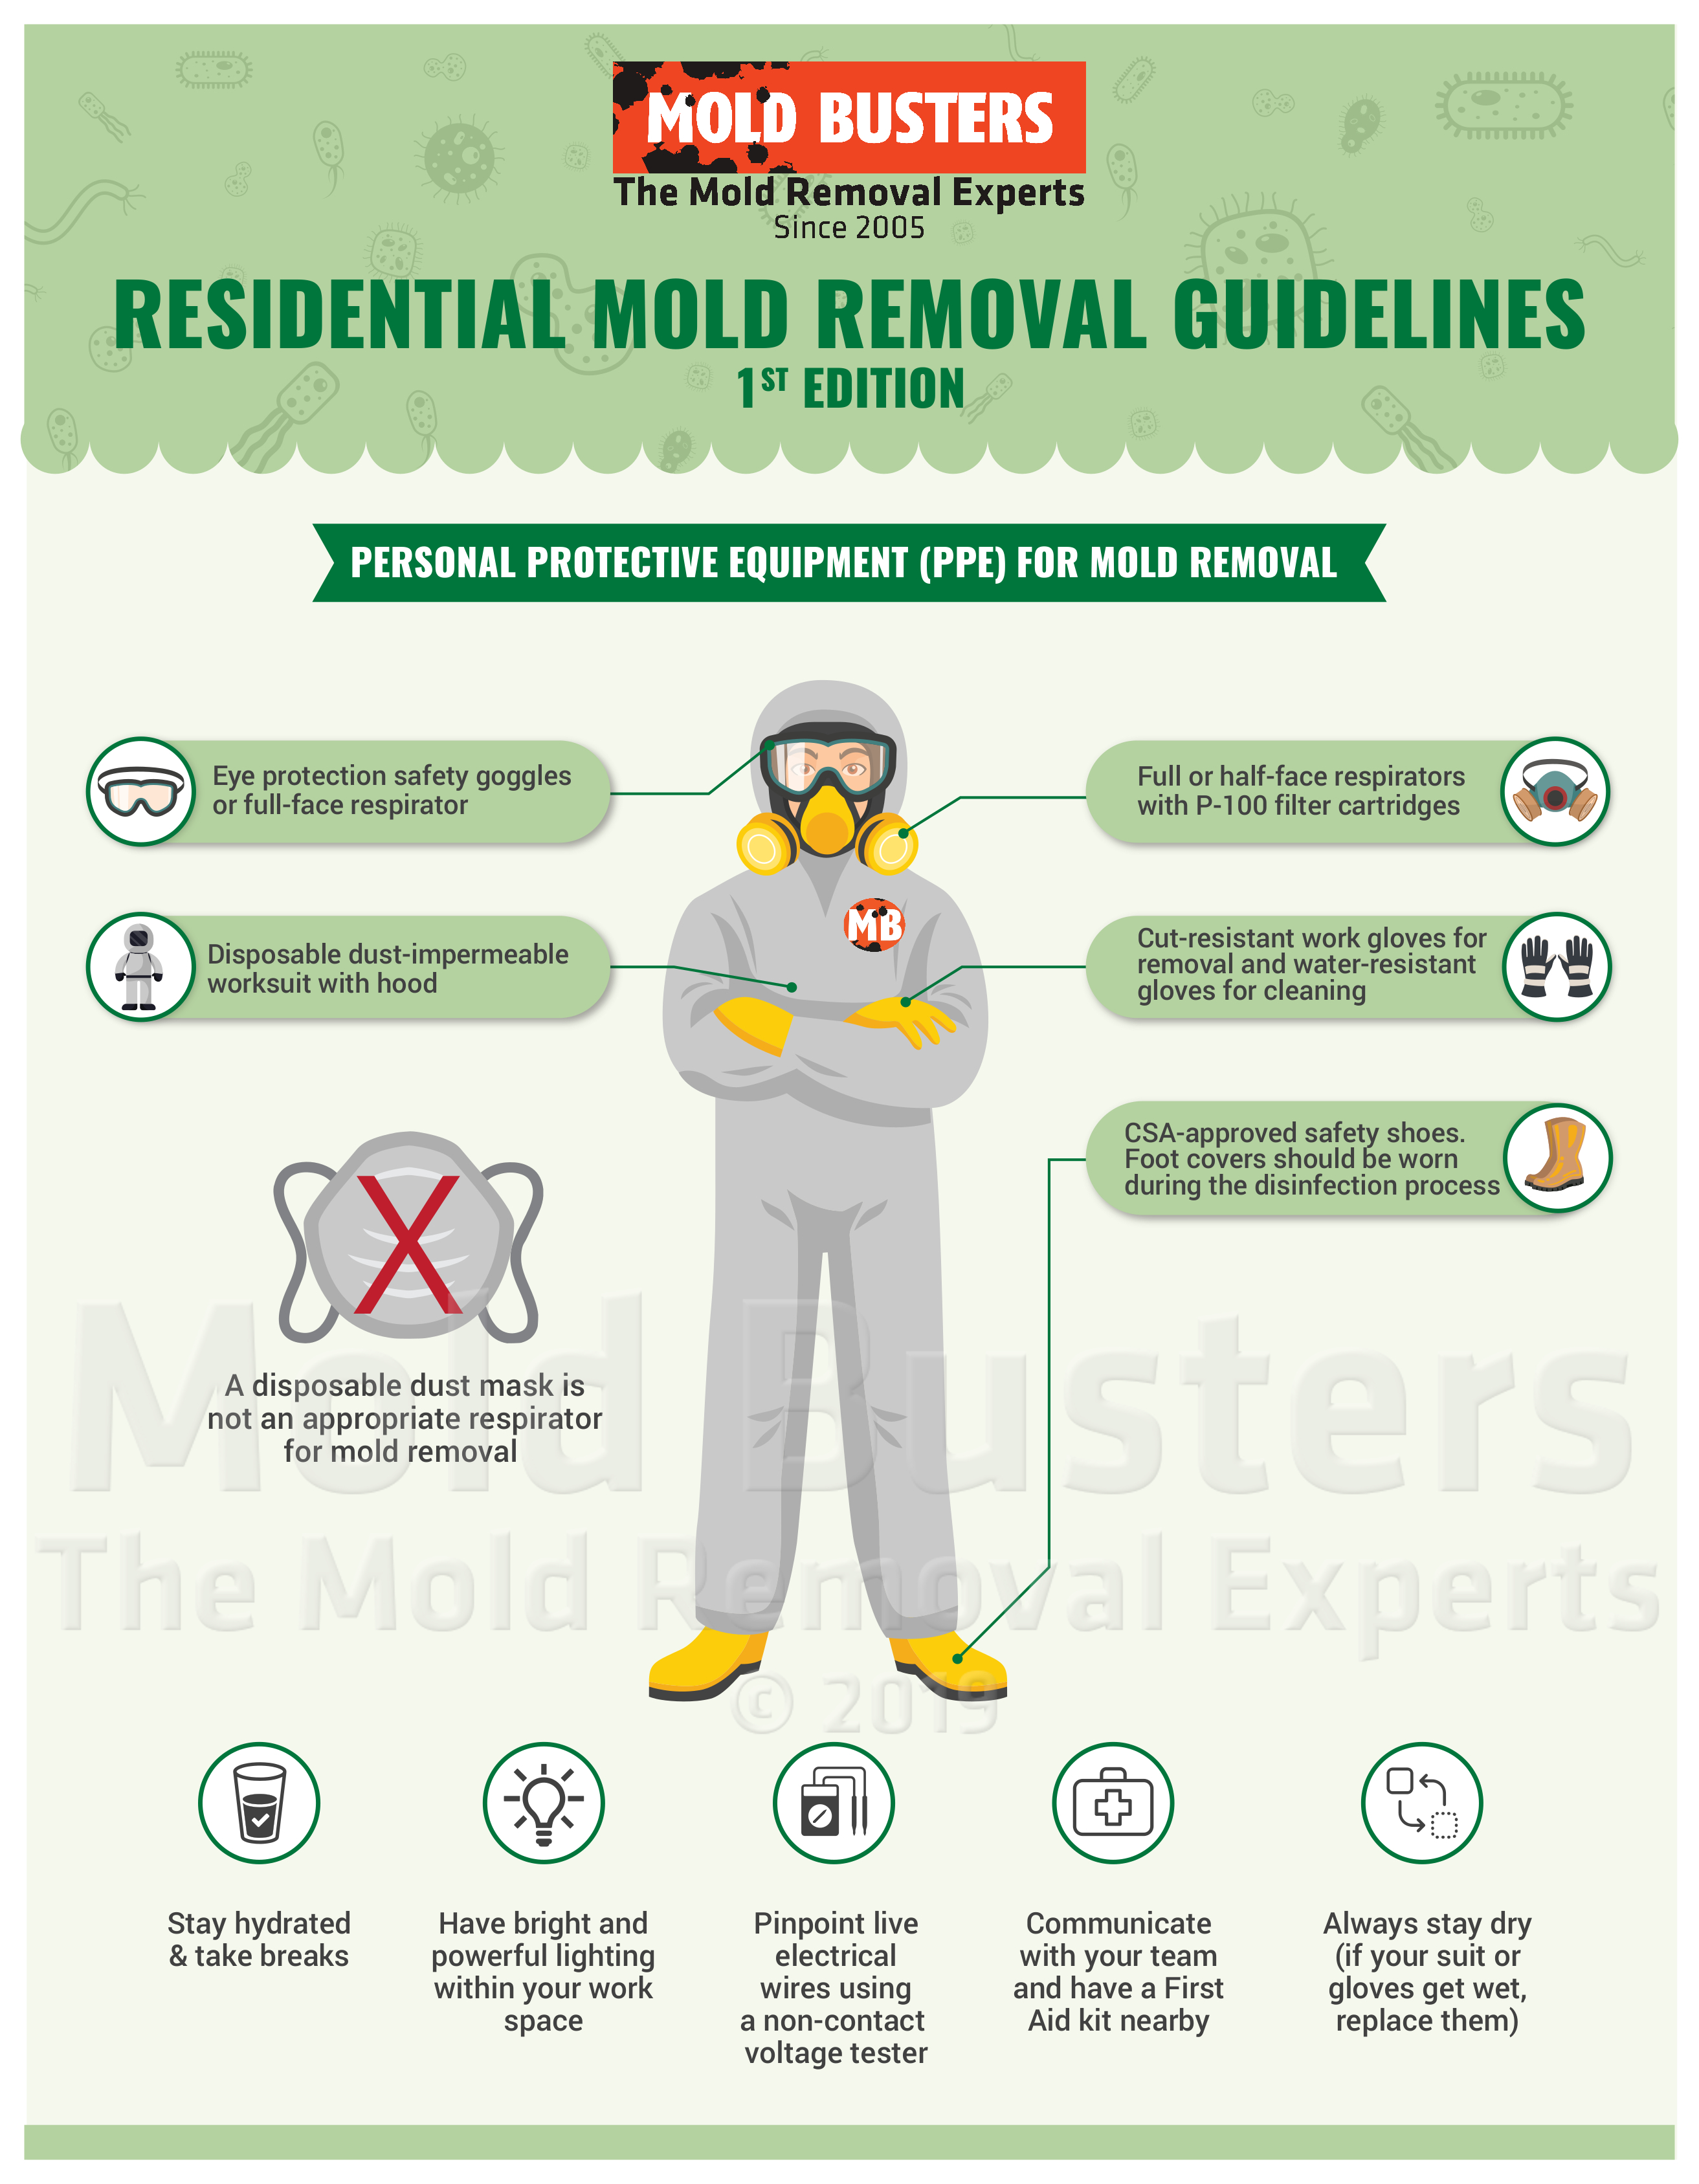 Personal Protective Equipment for Mold Removal